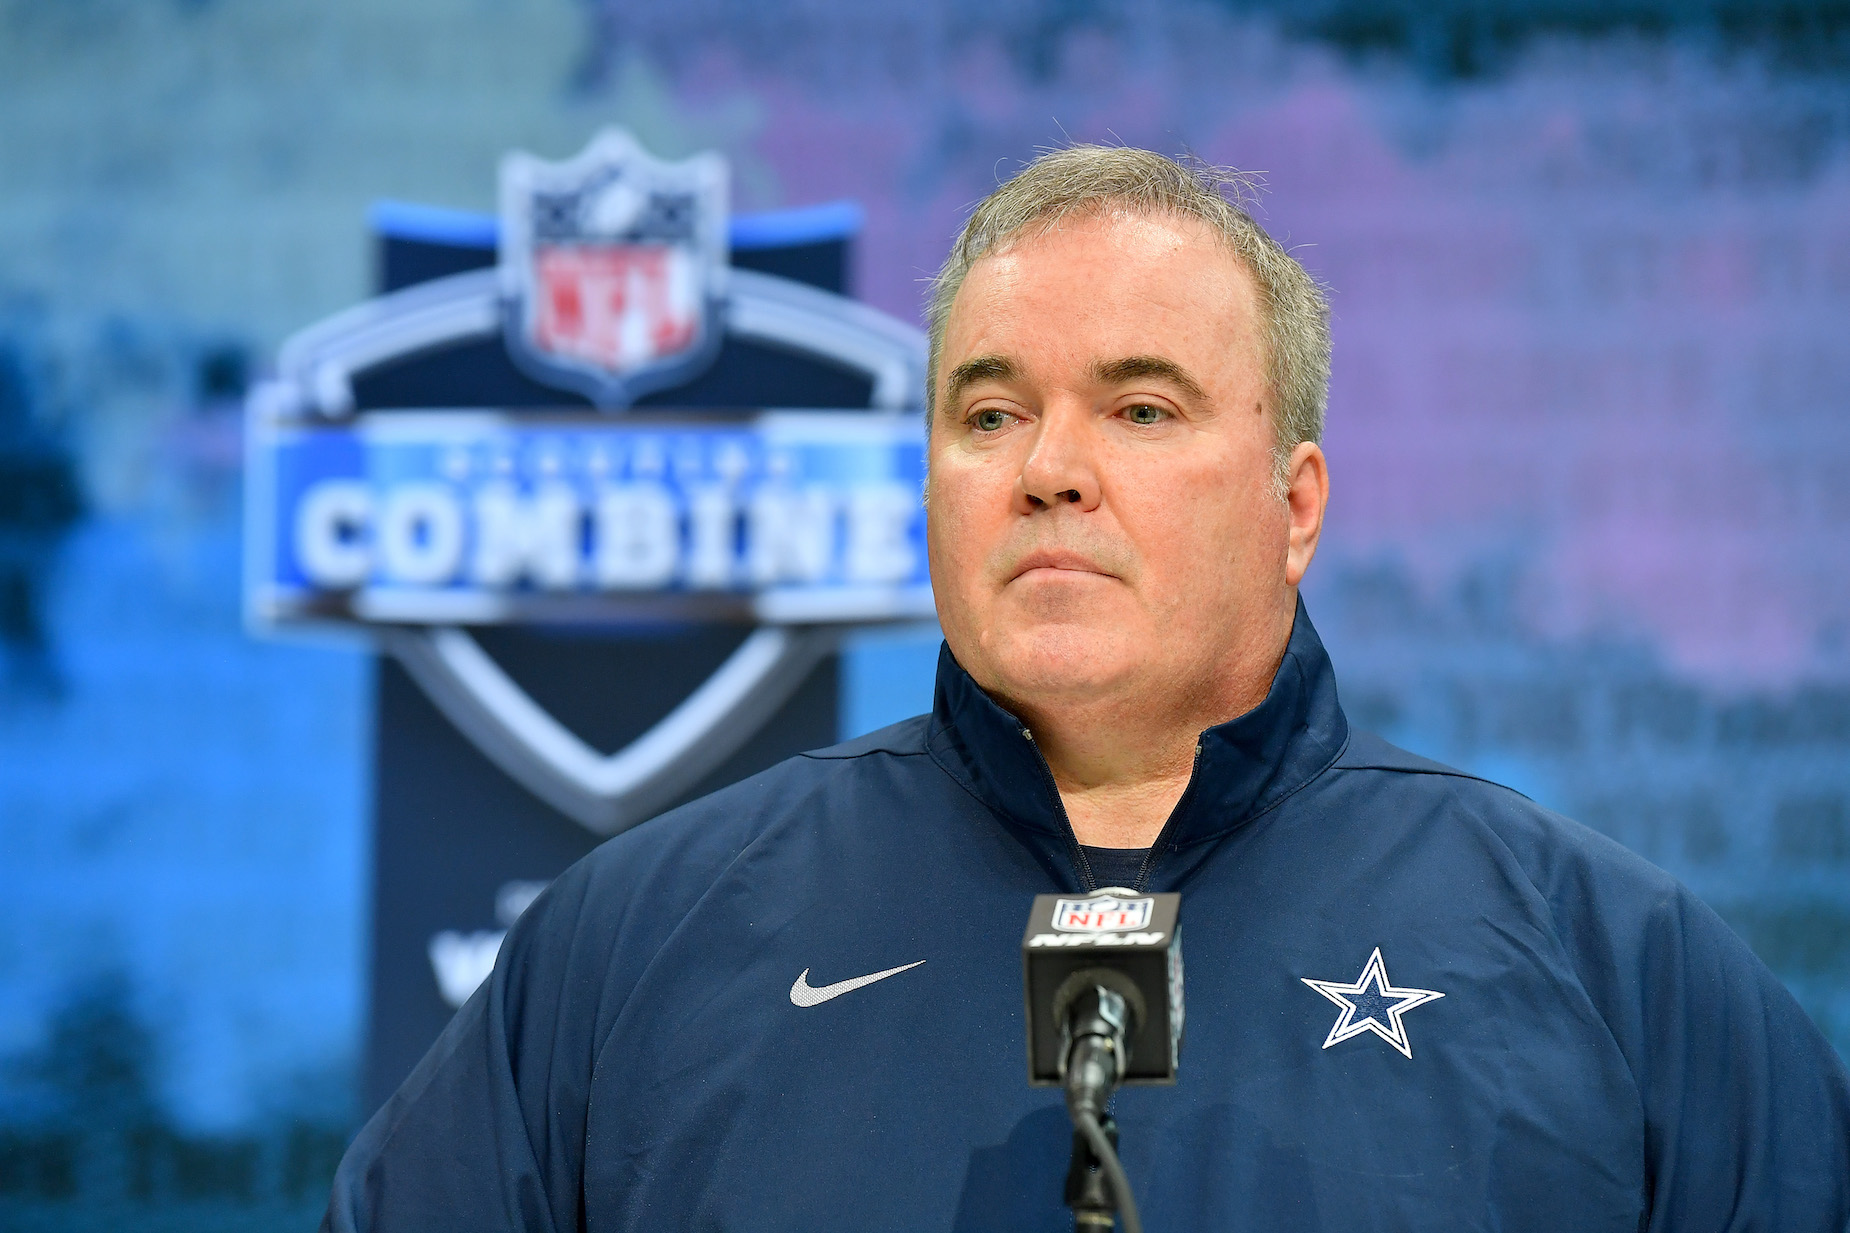 While the Dallas Cowboys aren't playing well, Mike McCarthy's media messaging may be even worse.